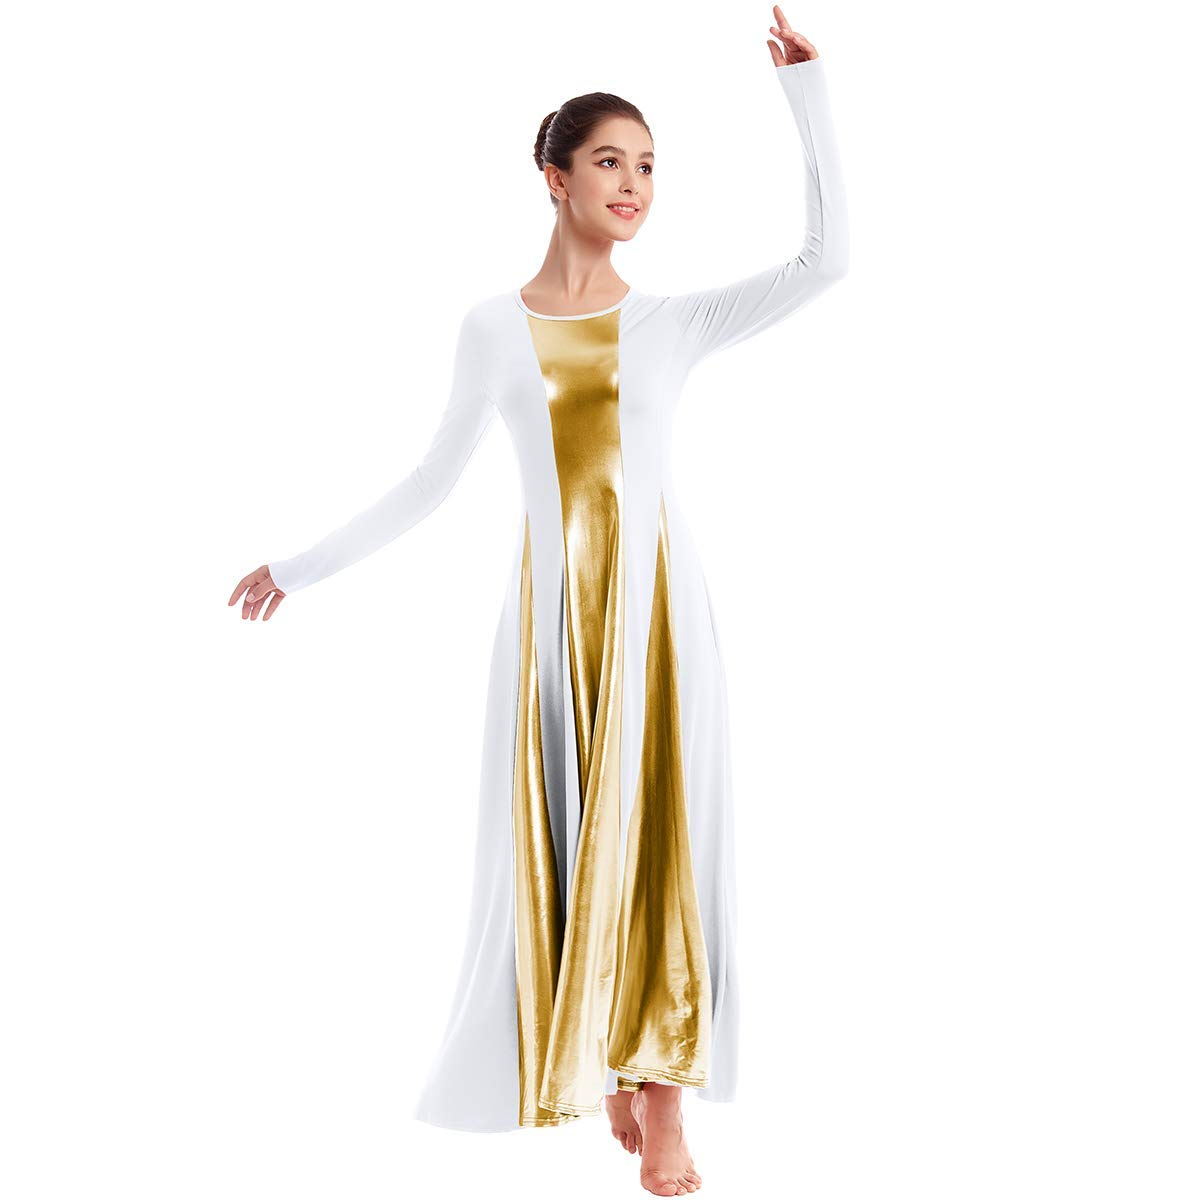 Womens Liturgical Praise Lyrical Dance Dress Loose Fit Full Length Metallic Color Block Long Sleeve Worship Costume Ballet Maxi Swing Gown White+Gold XXL by IBAKOM